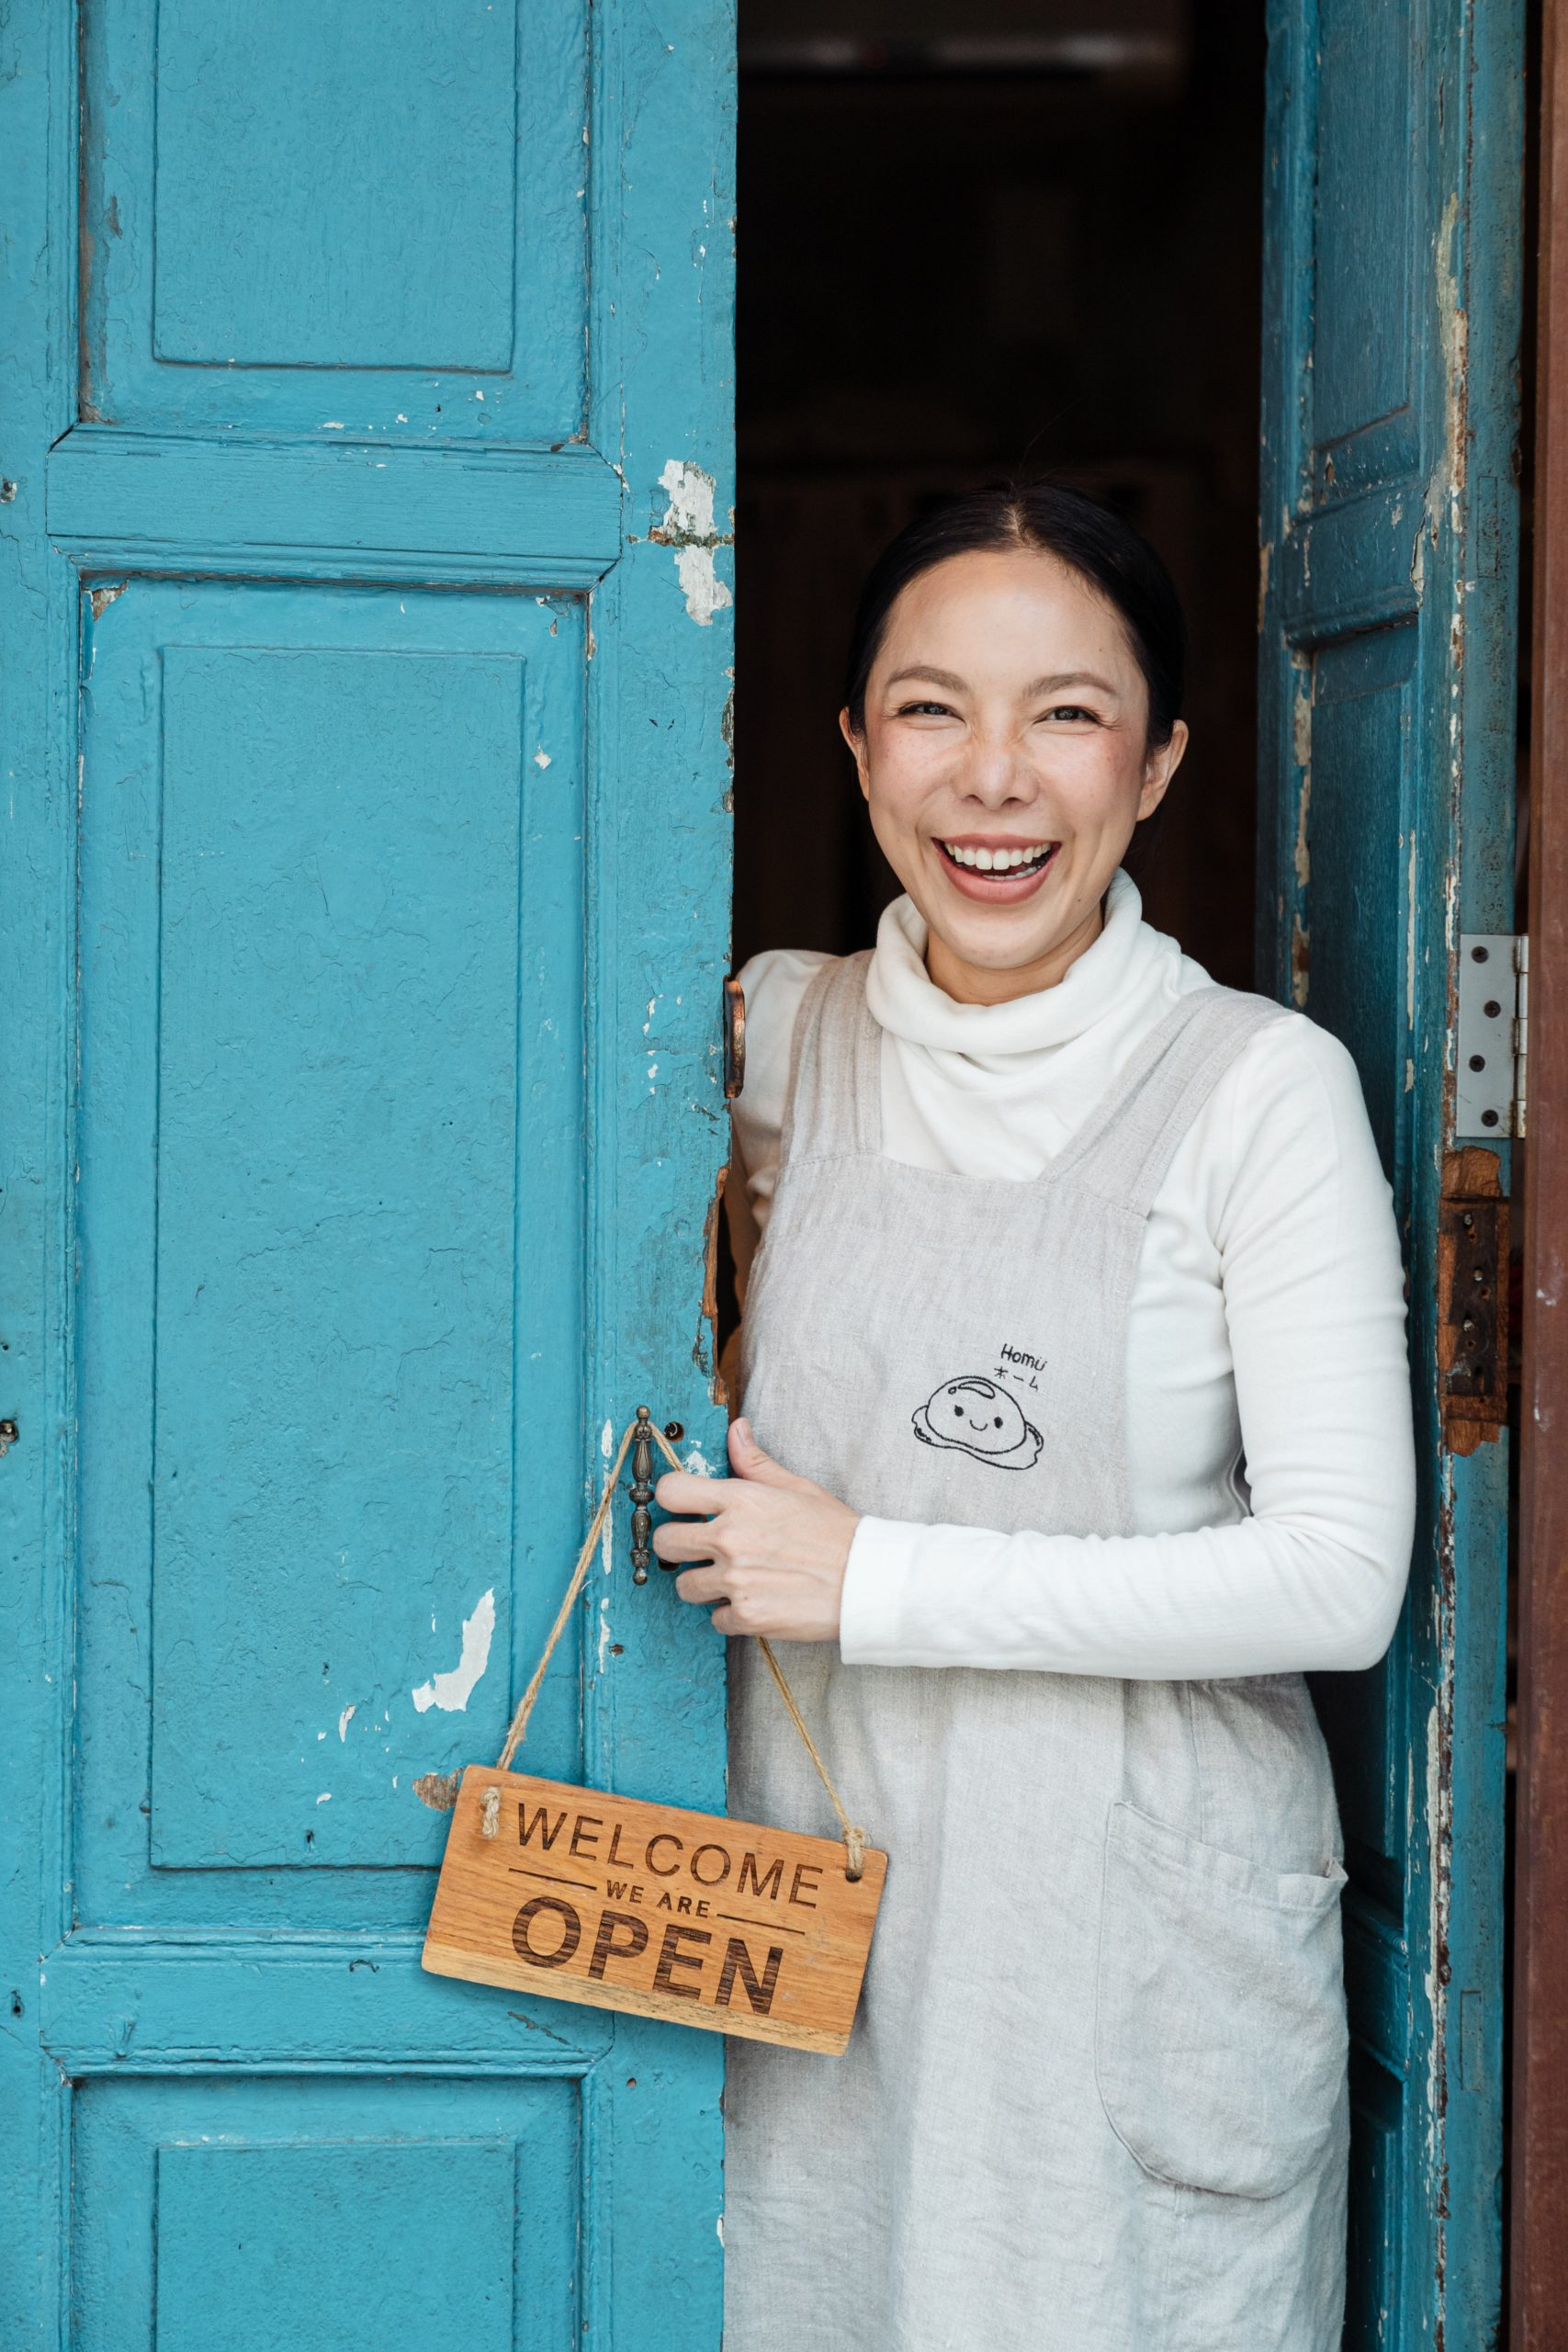 Happy ethnic woman in apron standing at entrance of own cafe door, holding WELCOME WE ARE OPEN sign